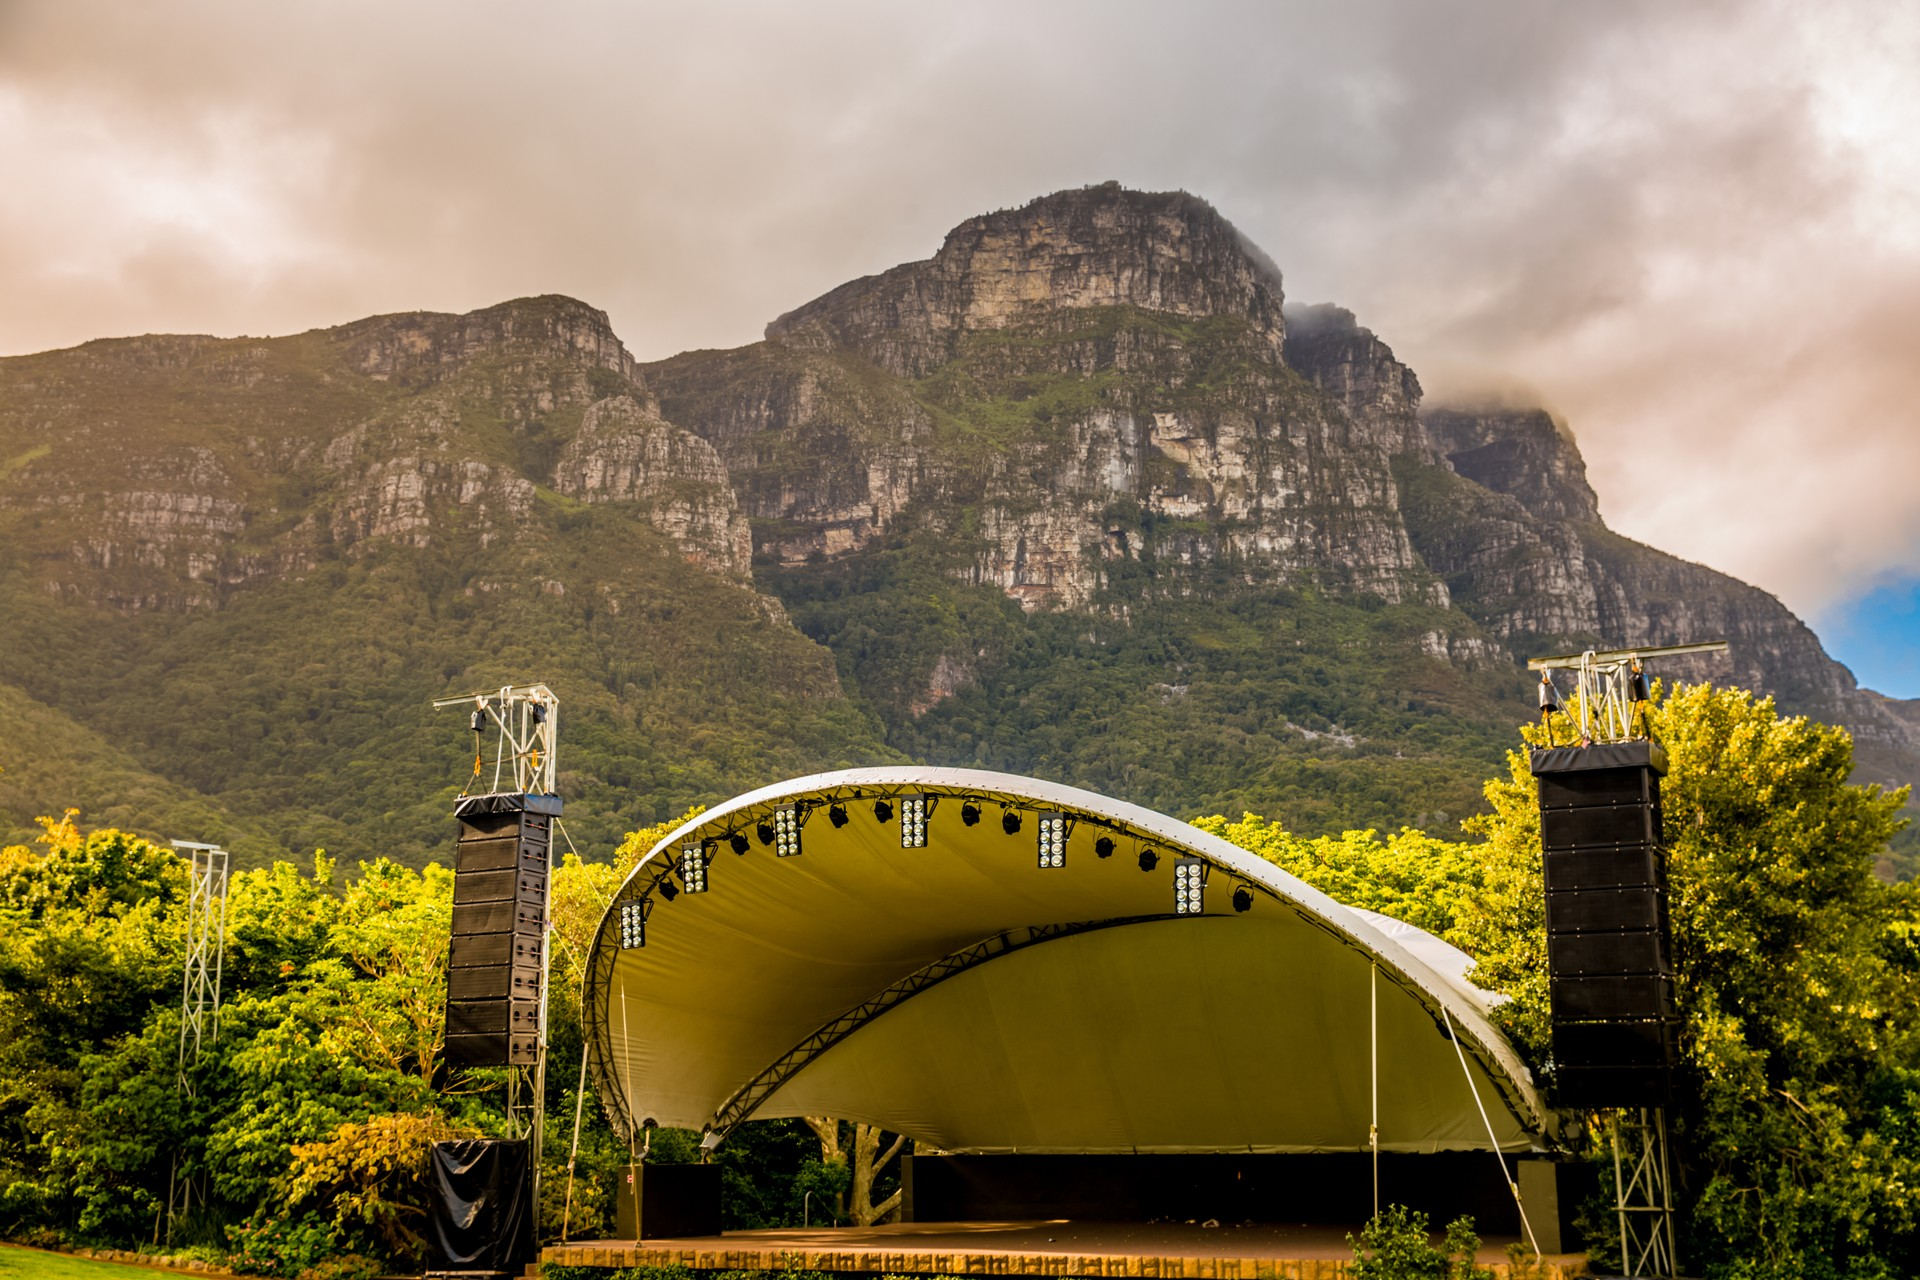 Summer concerts in Kirstenbosch National Botanical Garden